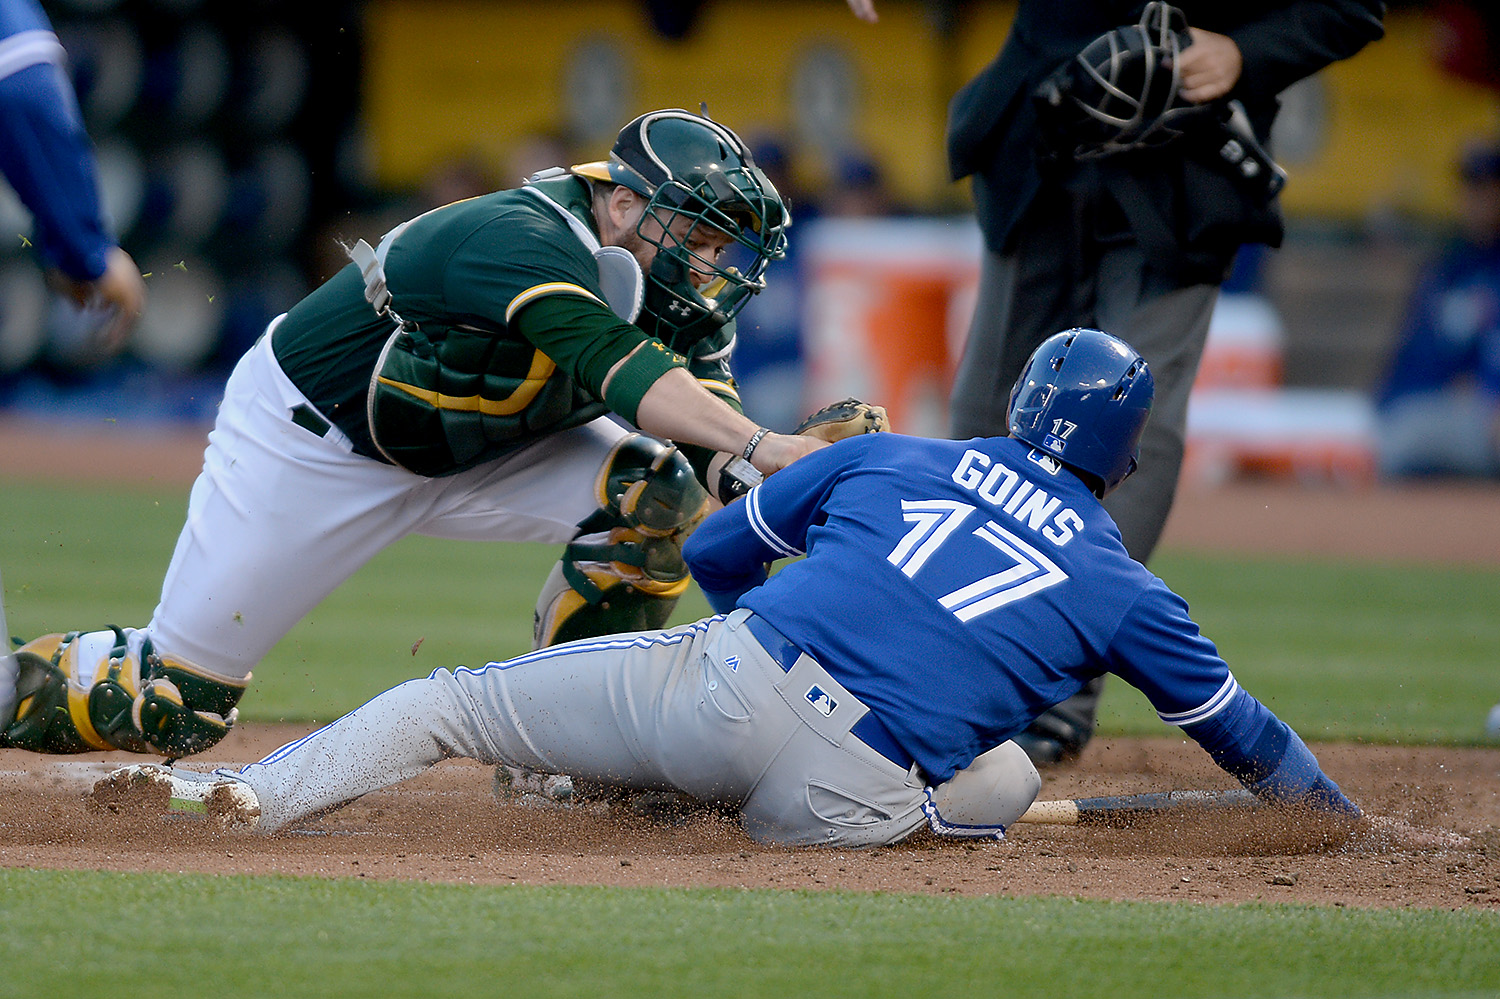 Toronto Blue Jays vs Oakland Athletics